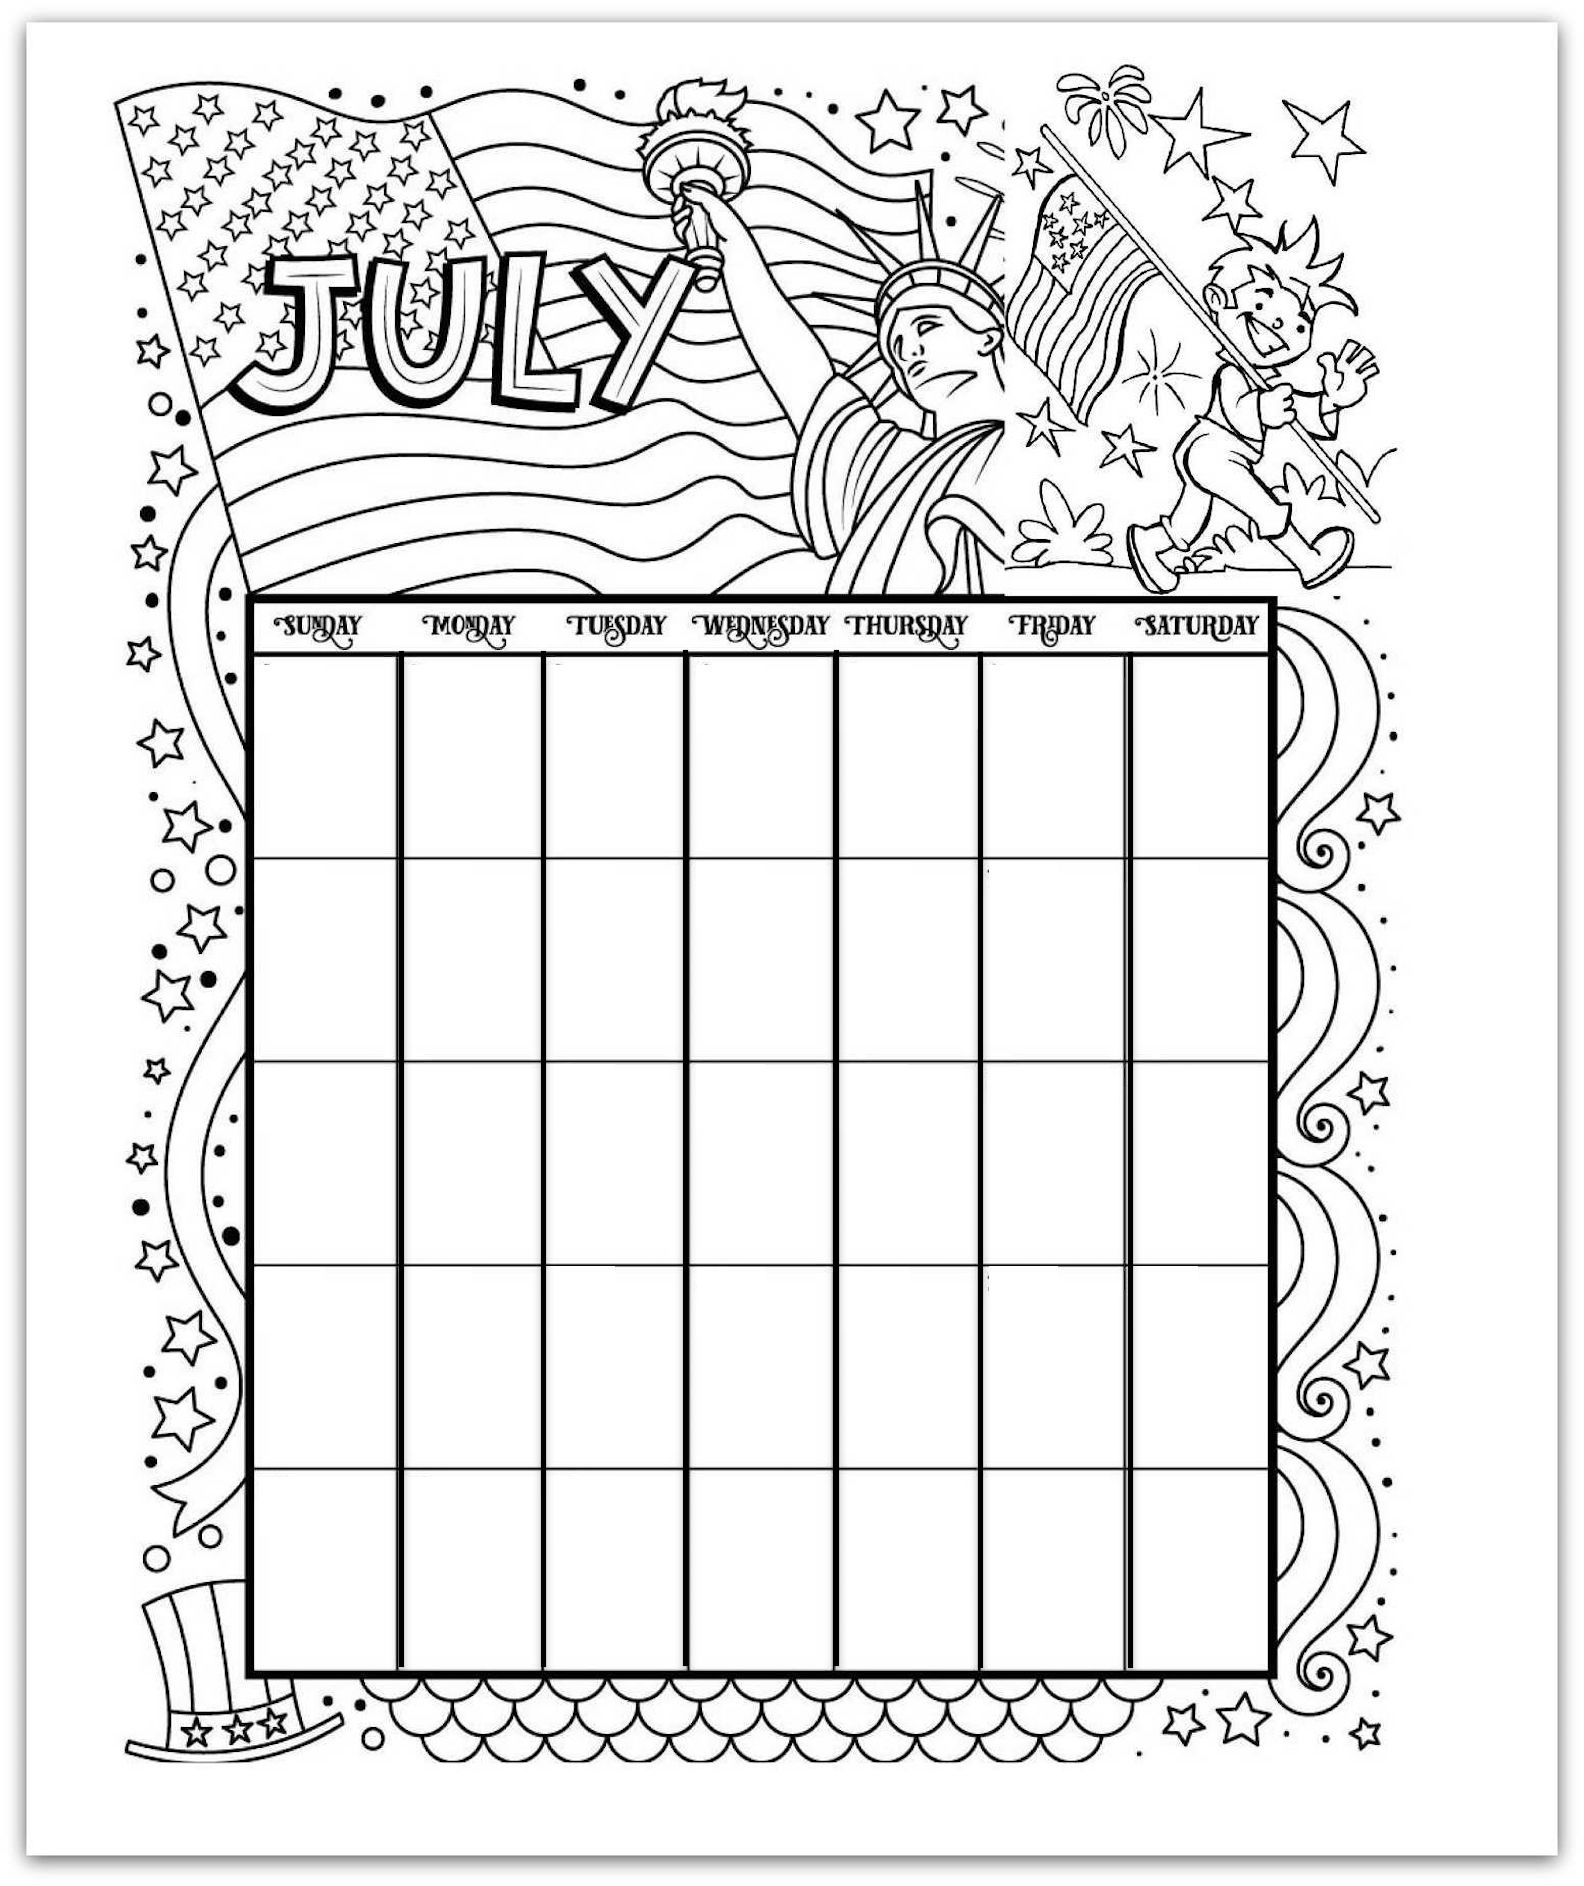 01/05/2021· blankcalendarpages.com is a united states based website that brings you simple, elegant calendar pages (mainly english). Free Printable Calendar Coloring Pages - Every Month, ANY Year